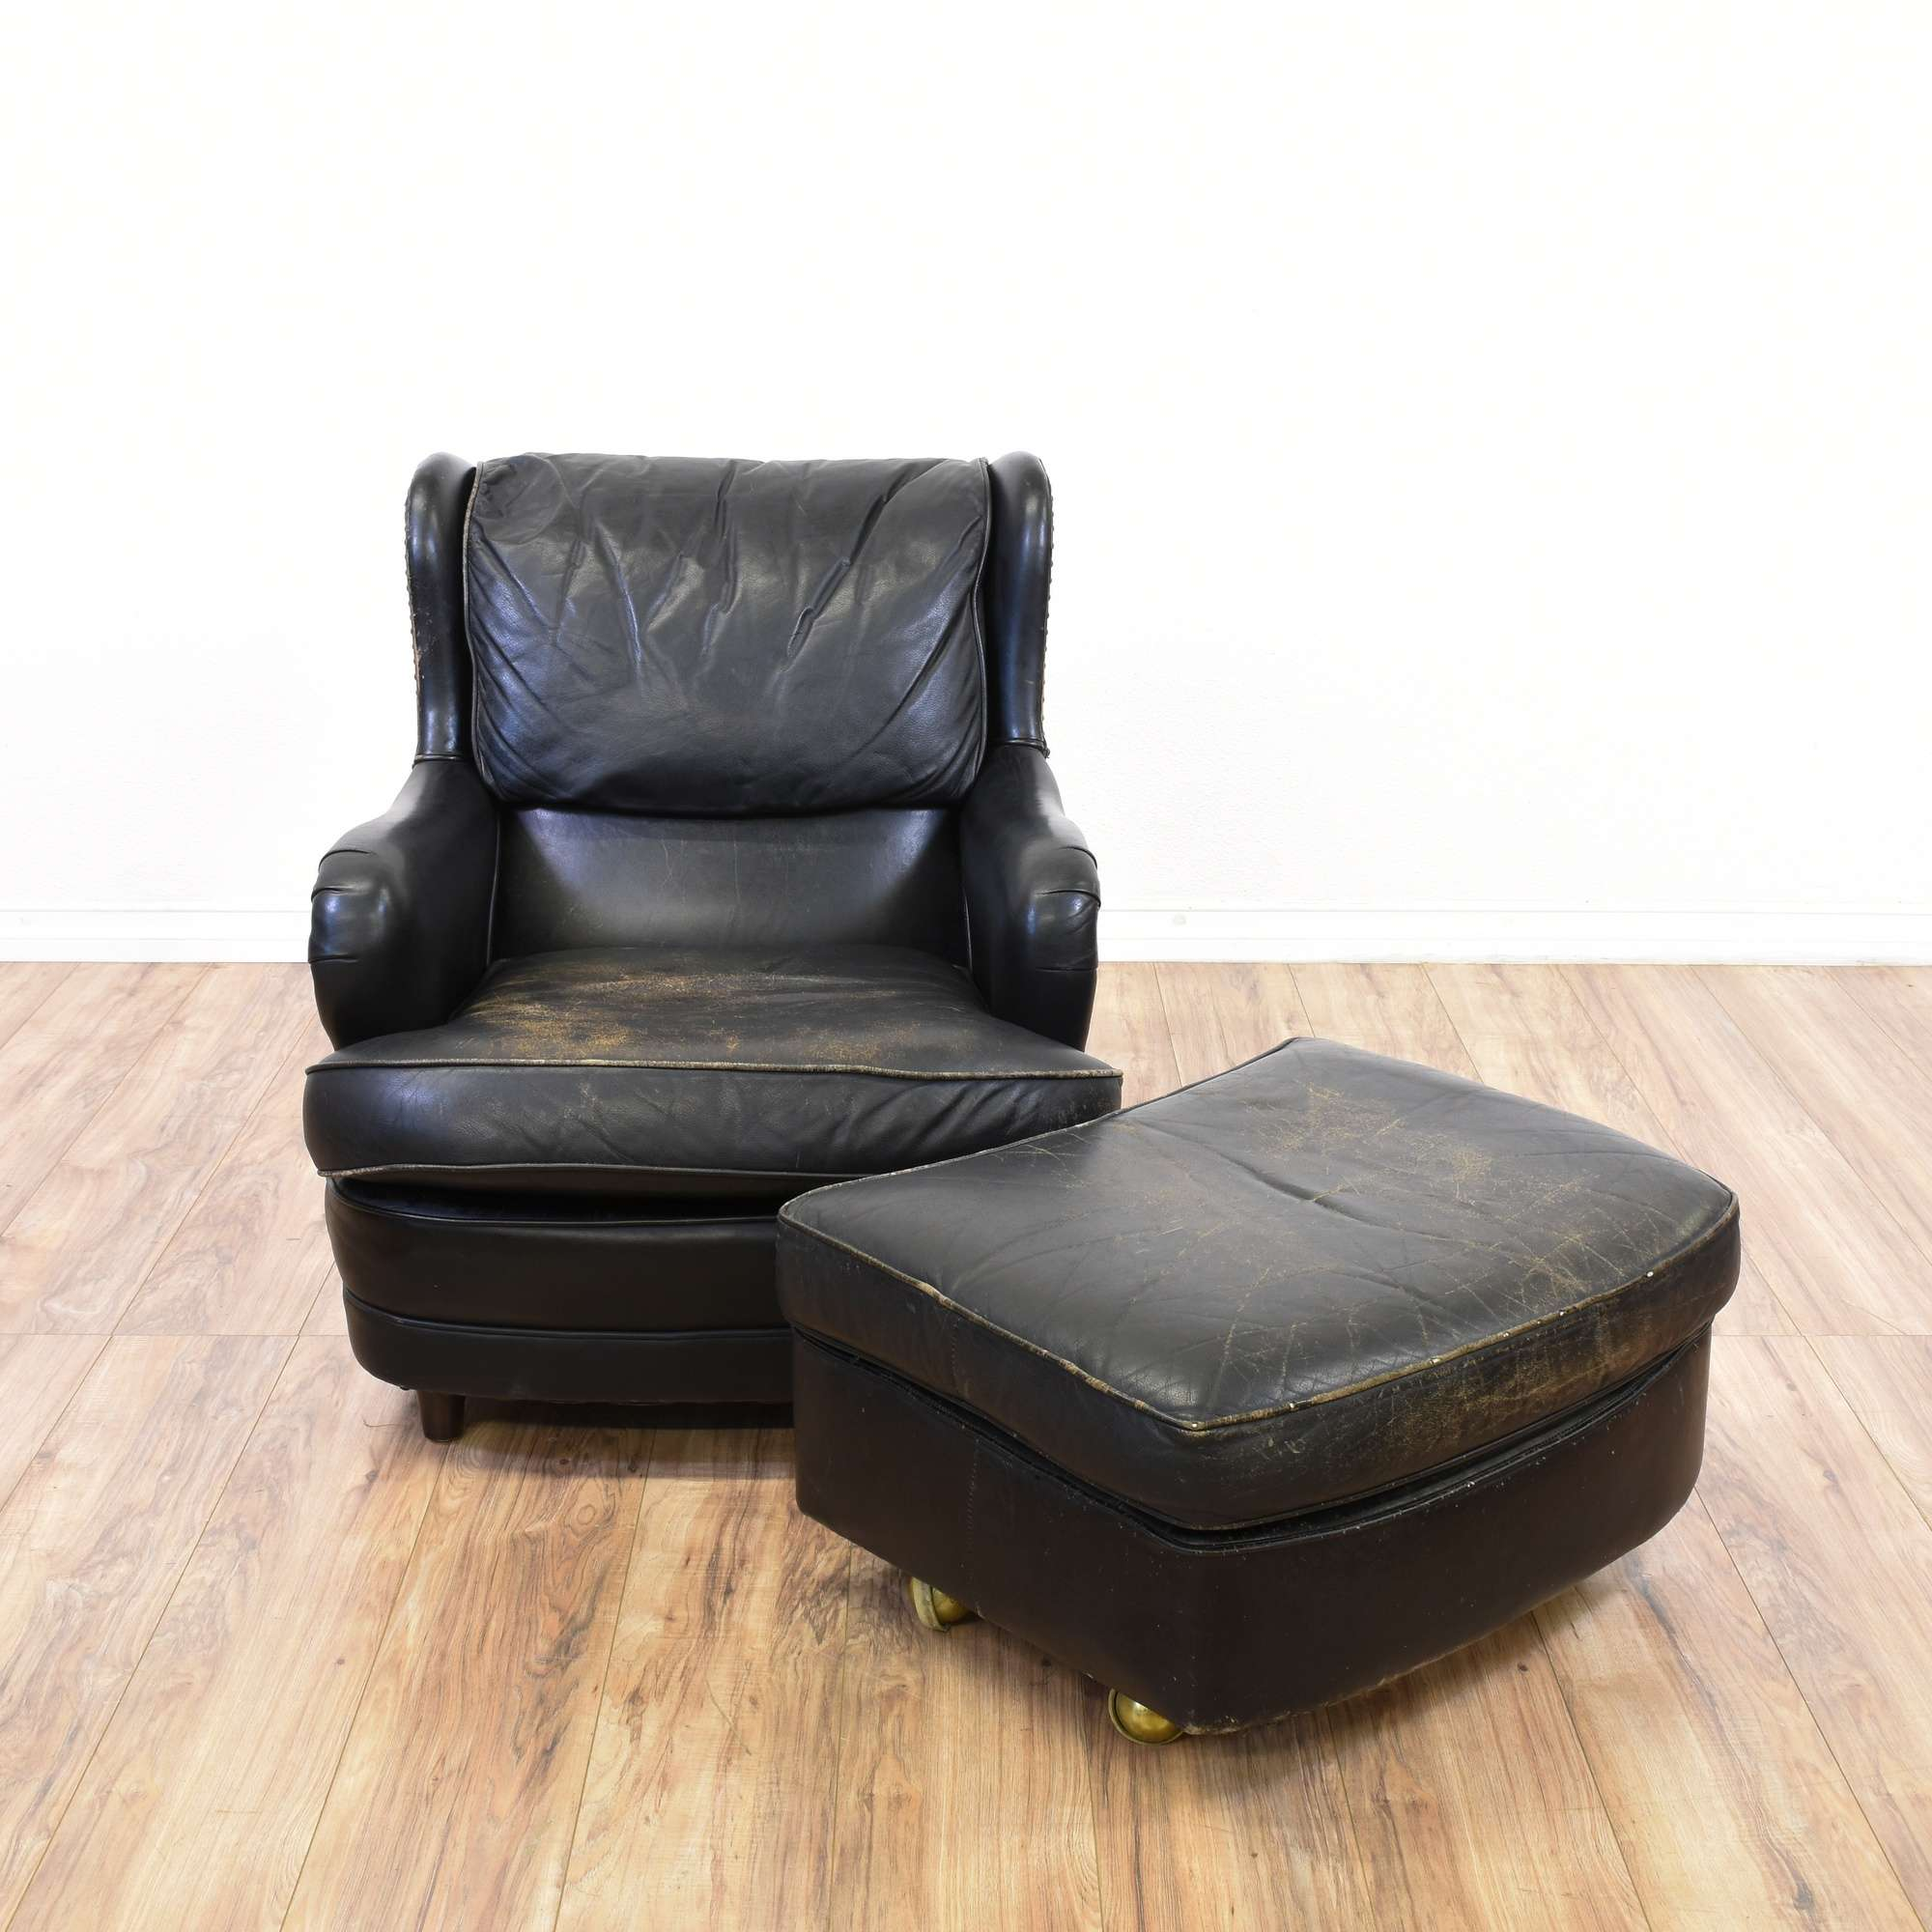 Admirable Schafer Brothers Distressed Leather Armchair Machost Co Dining Chair Design Ideas Machostcouk